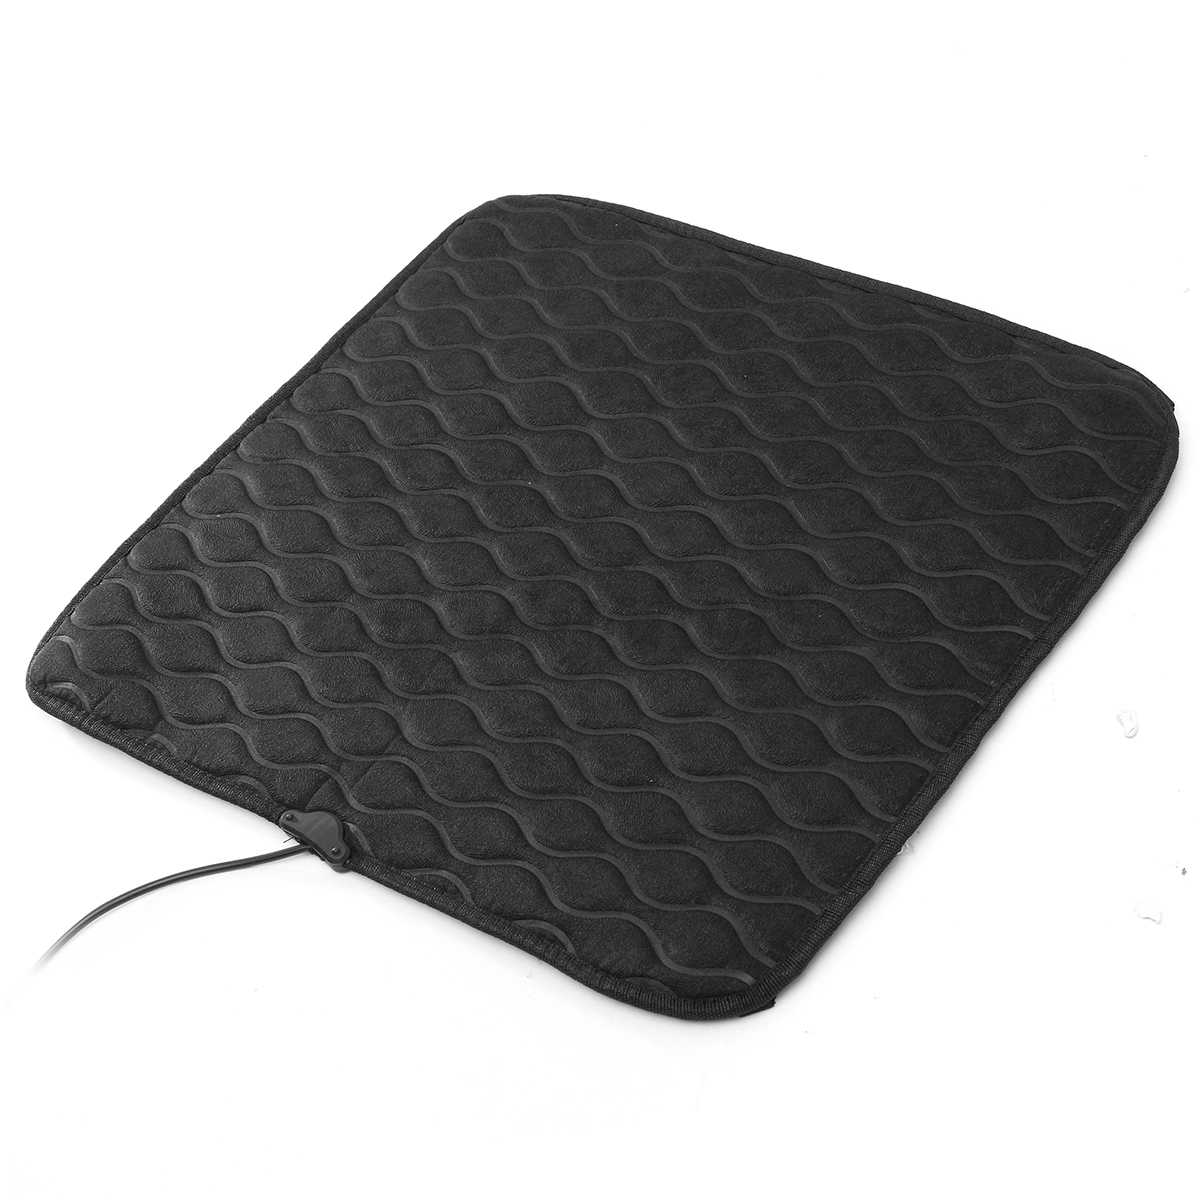 12v 50cm electric car seat heated seat cushion heater pad switch carbon fiber ebay. Black Bedroom Furniture Sets. Home Design Ideas